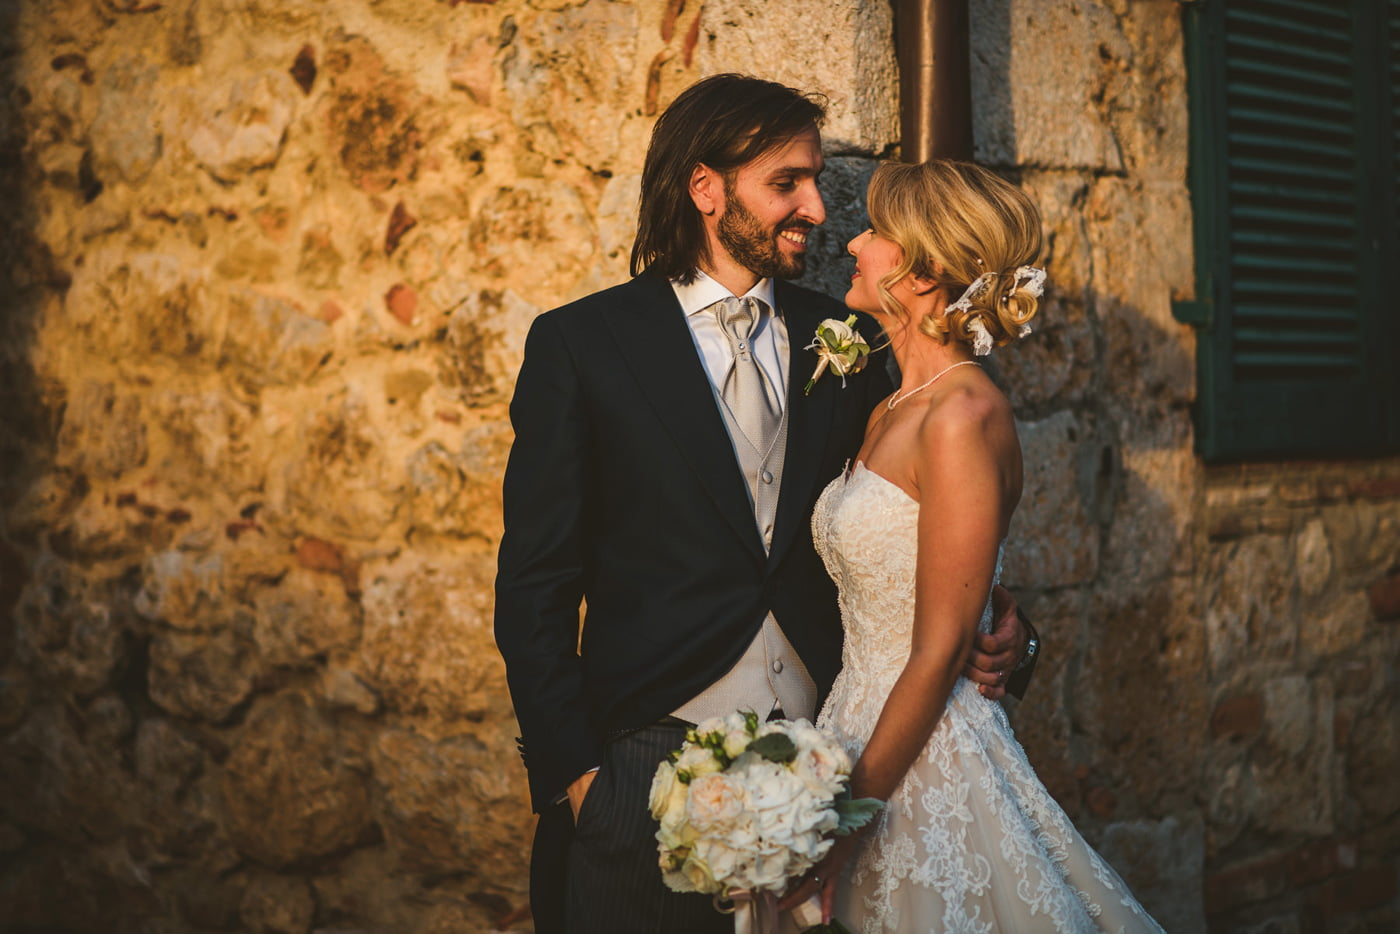 Andrea & Francesca | Wedding at Borgo San Luigi by Federico Pannacci 70